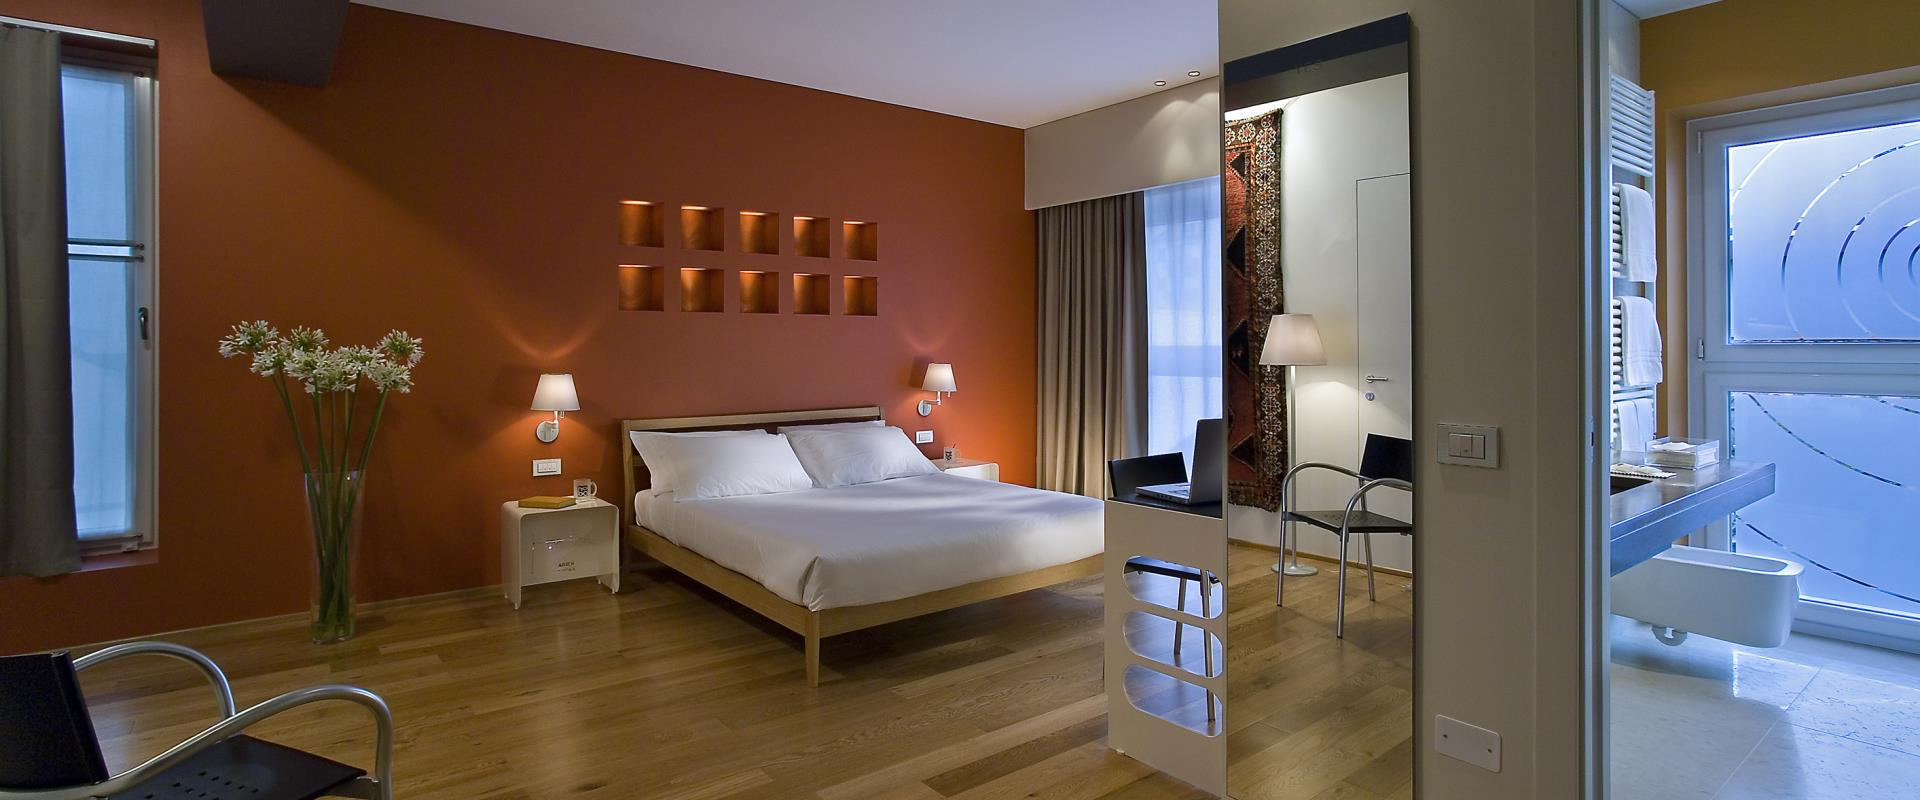 Discover the comfort of the rooms of BW Plus Hotel Bologna,4-star hotel near Venice. Choose the room type that suits you best!